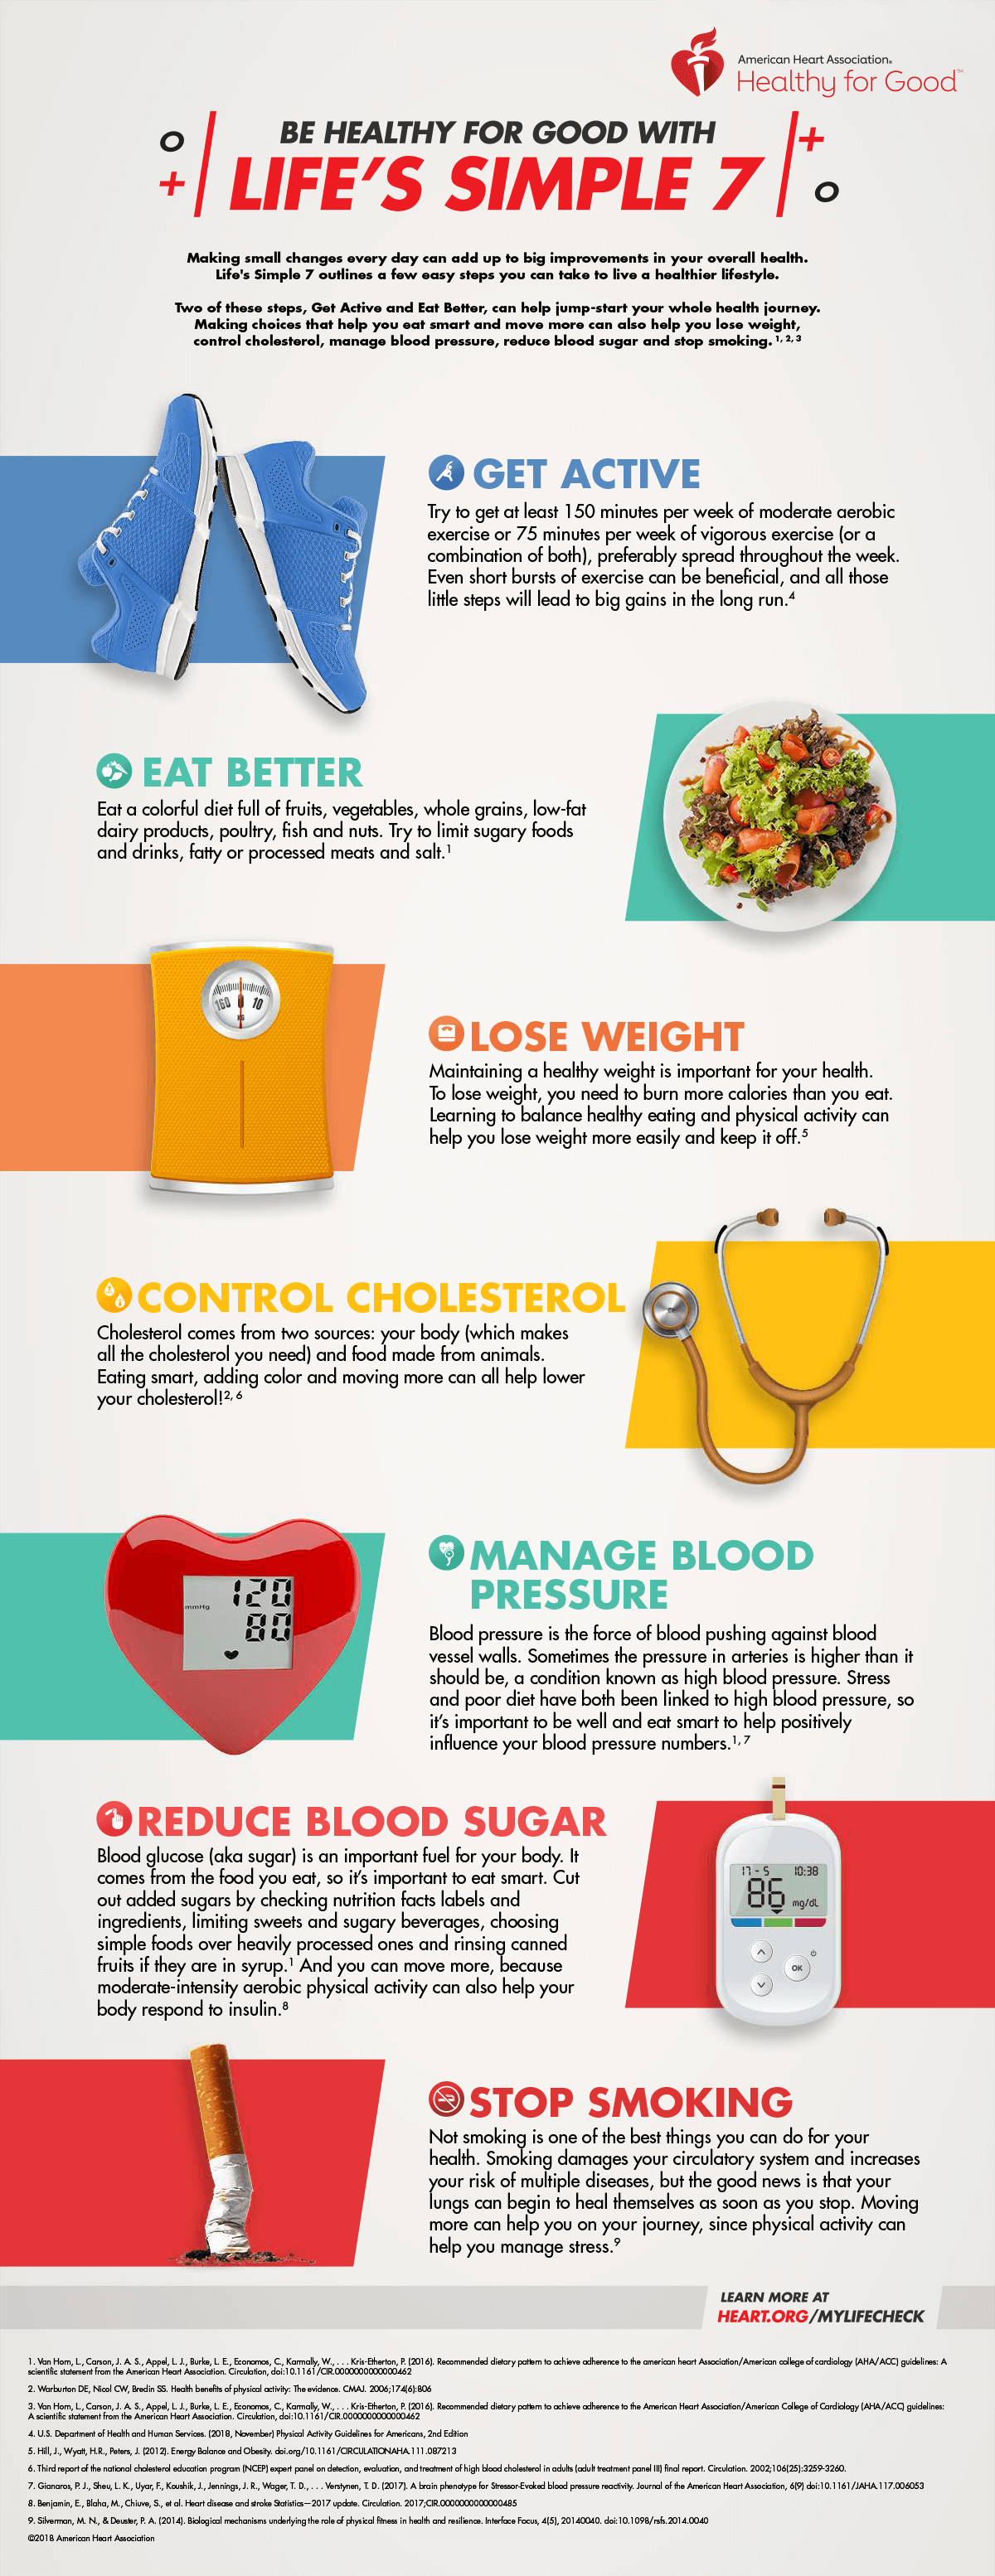 Life's Simple 7 infographic